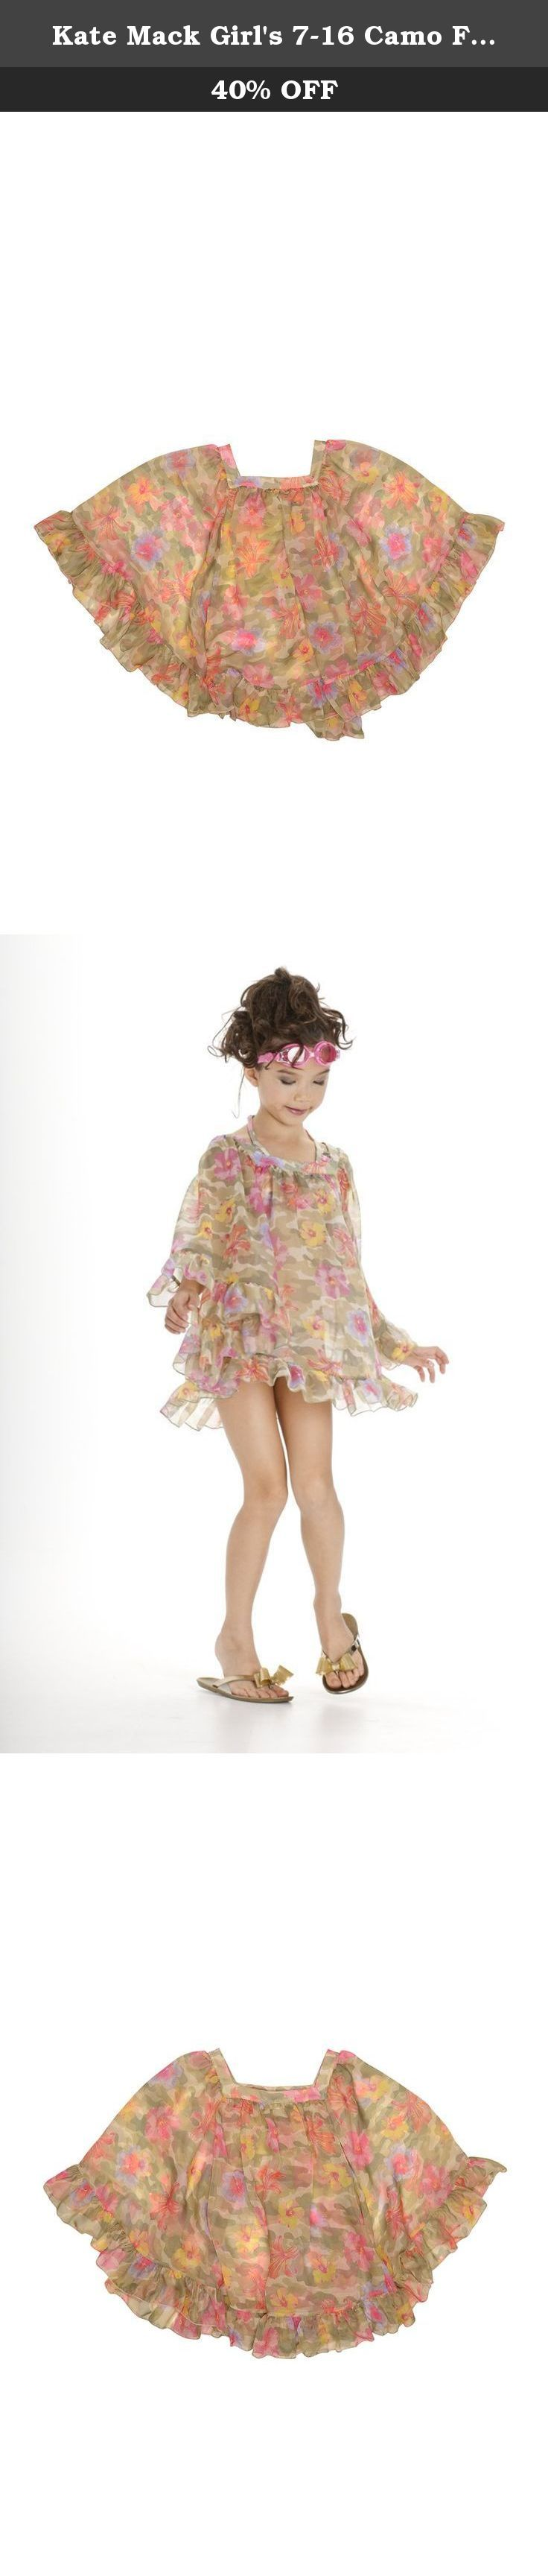 Kate Mack Girl's 7-16 Camo Flower Chiffon Coverup - Size 12, Multi. This free-spirited chiffon coverup works perfectly over the camo-flower swimsuits but will look just as cute with her favorite shorts and jeans!.